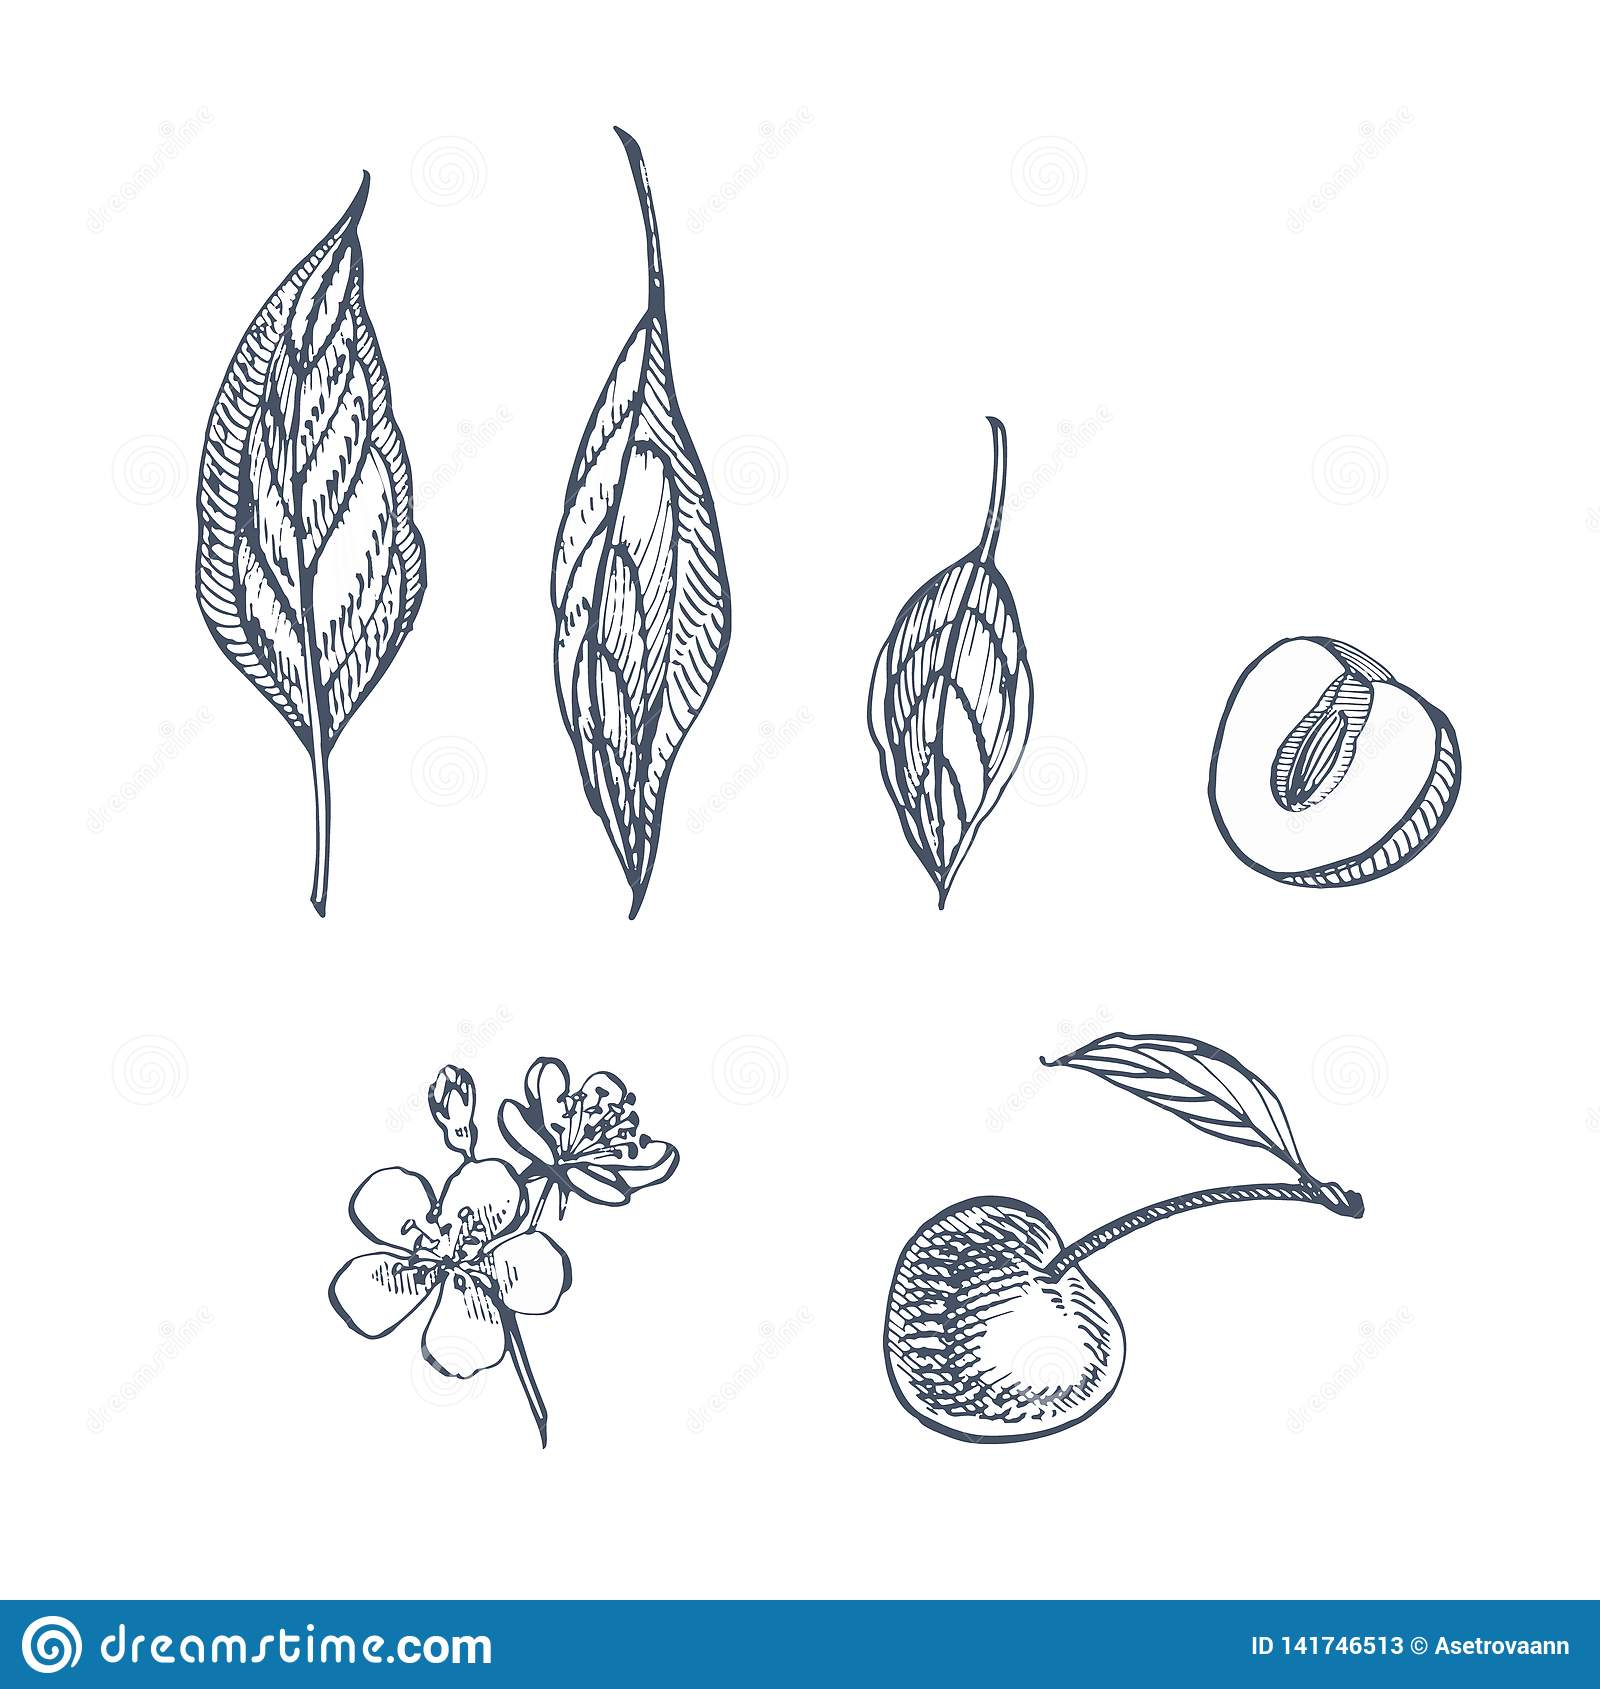 Cherry set. Hand drawn berry isolated on white background. Summer fruit engraved style illustration. Great for label